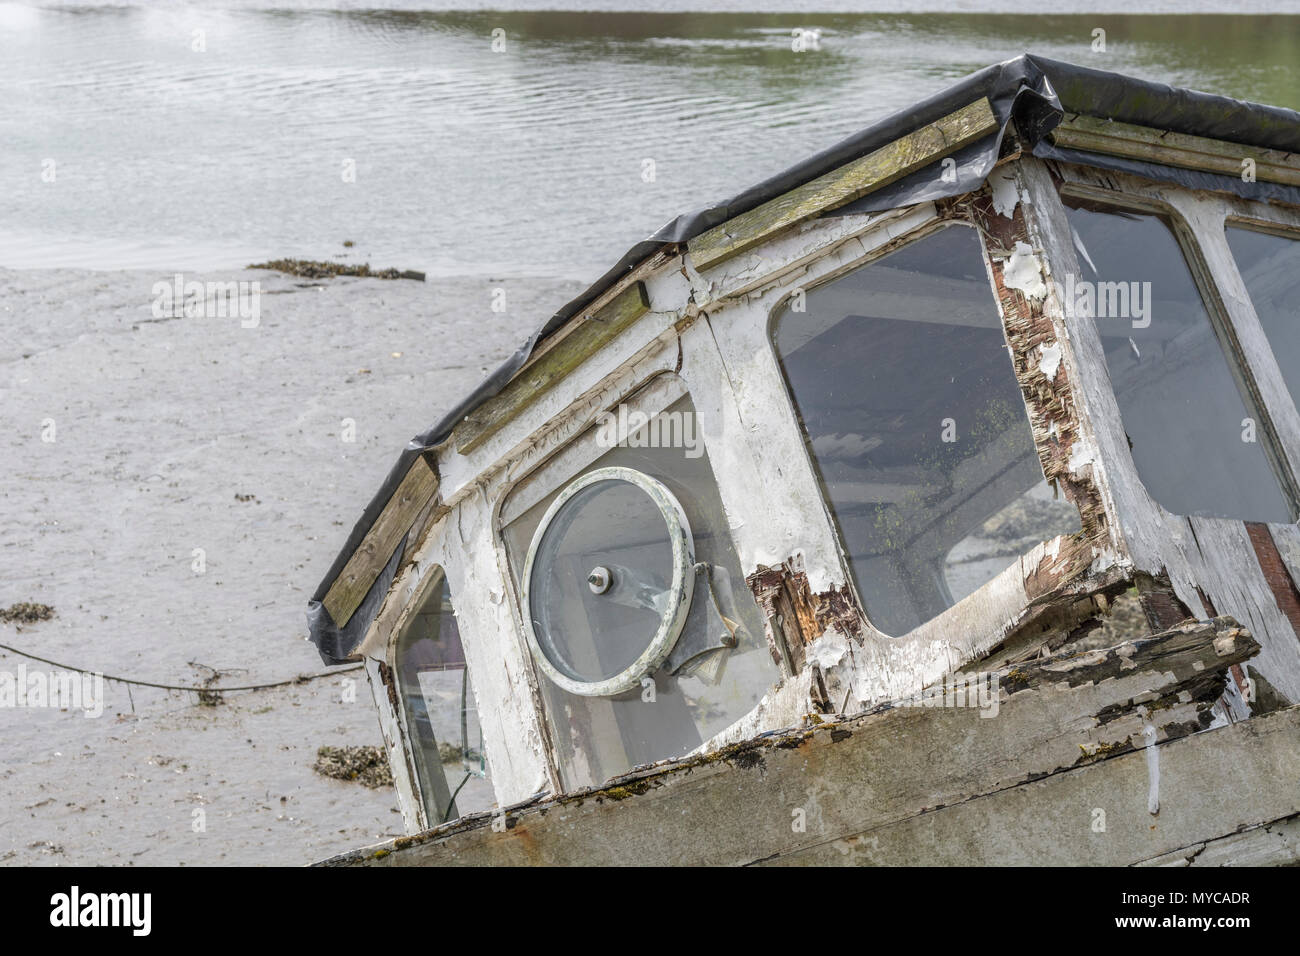 Old boat which has been better days. - Stock Image